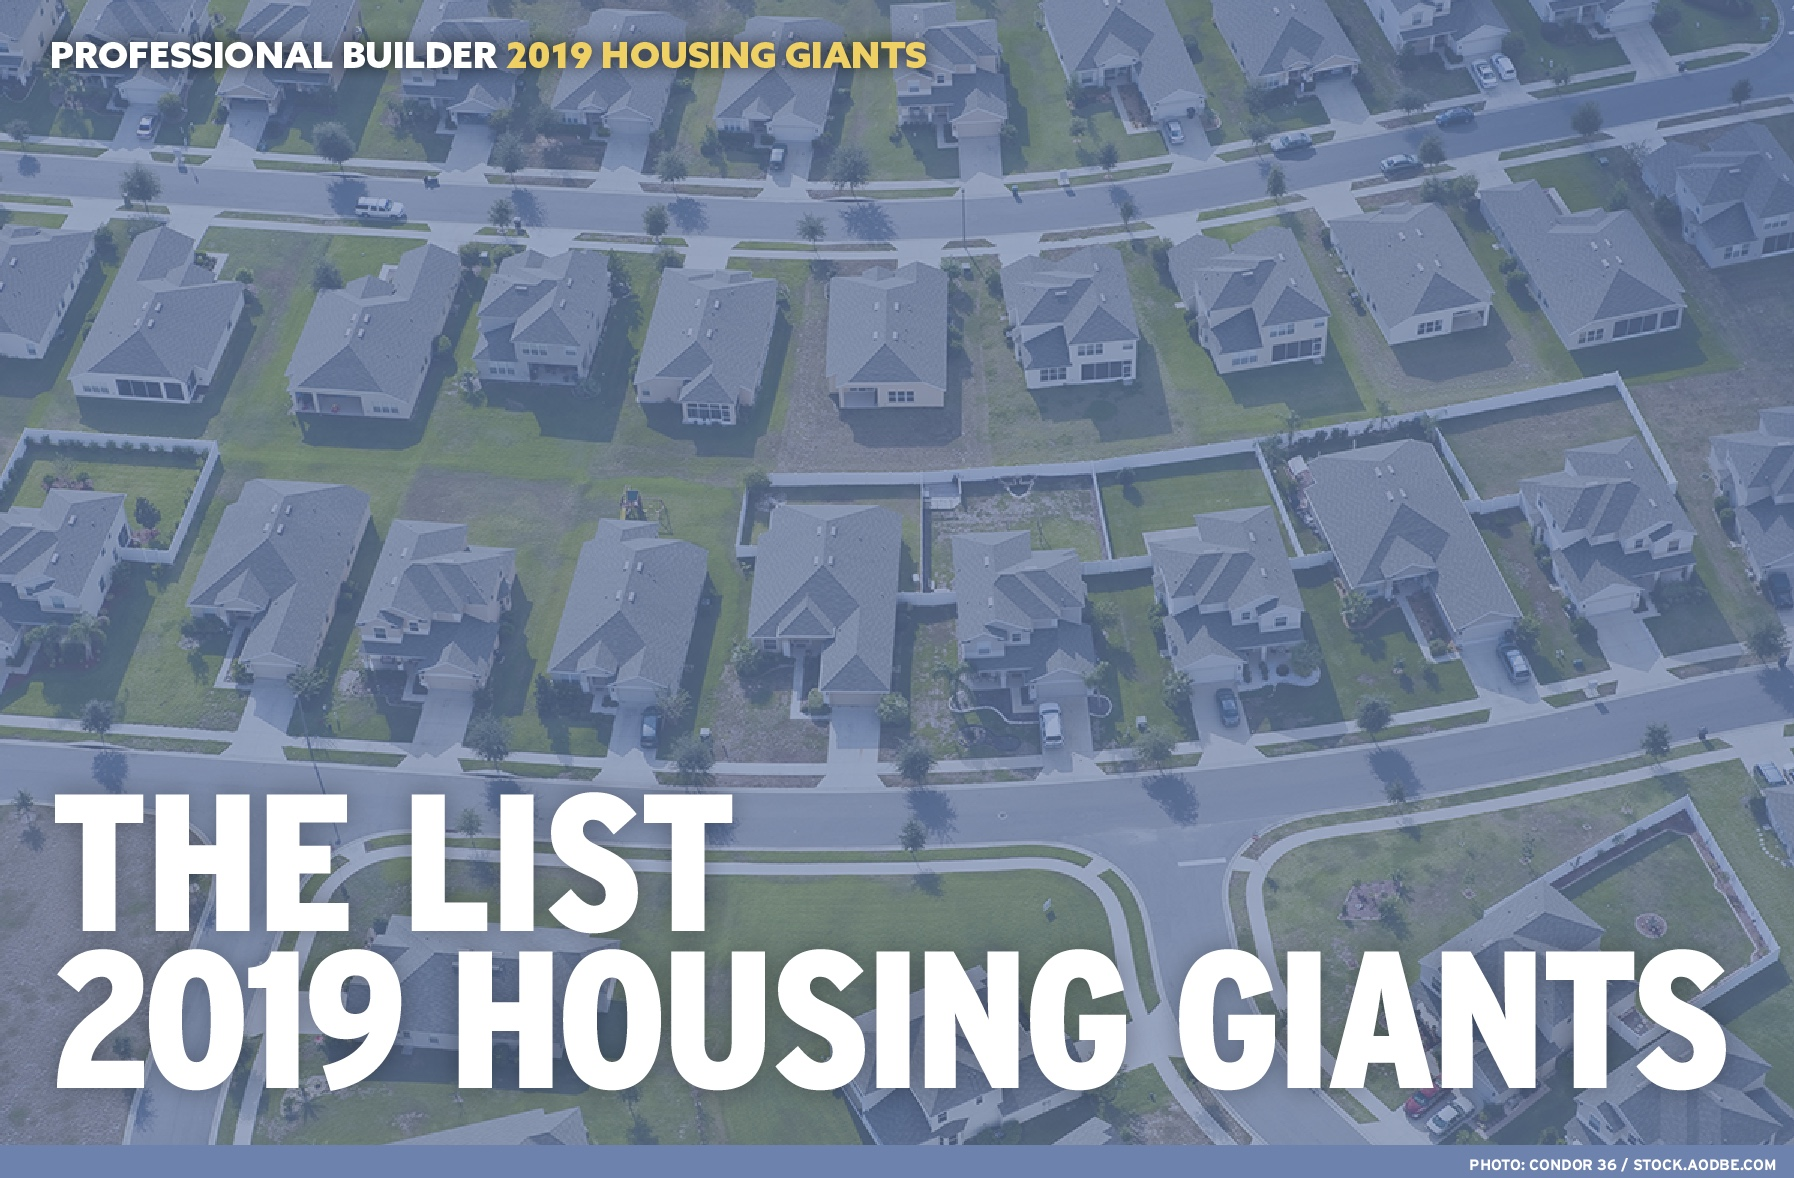 2019 Professional Builder Housing Giants list